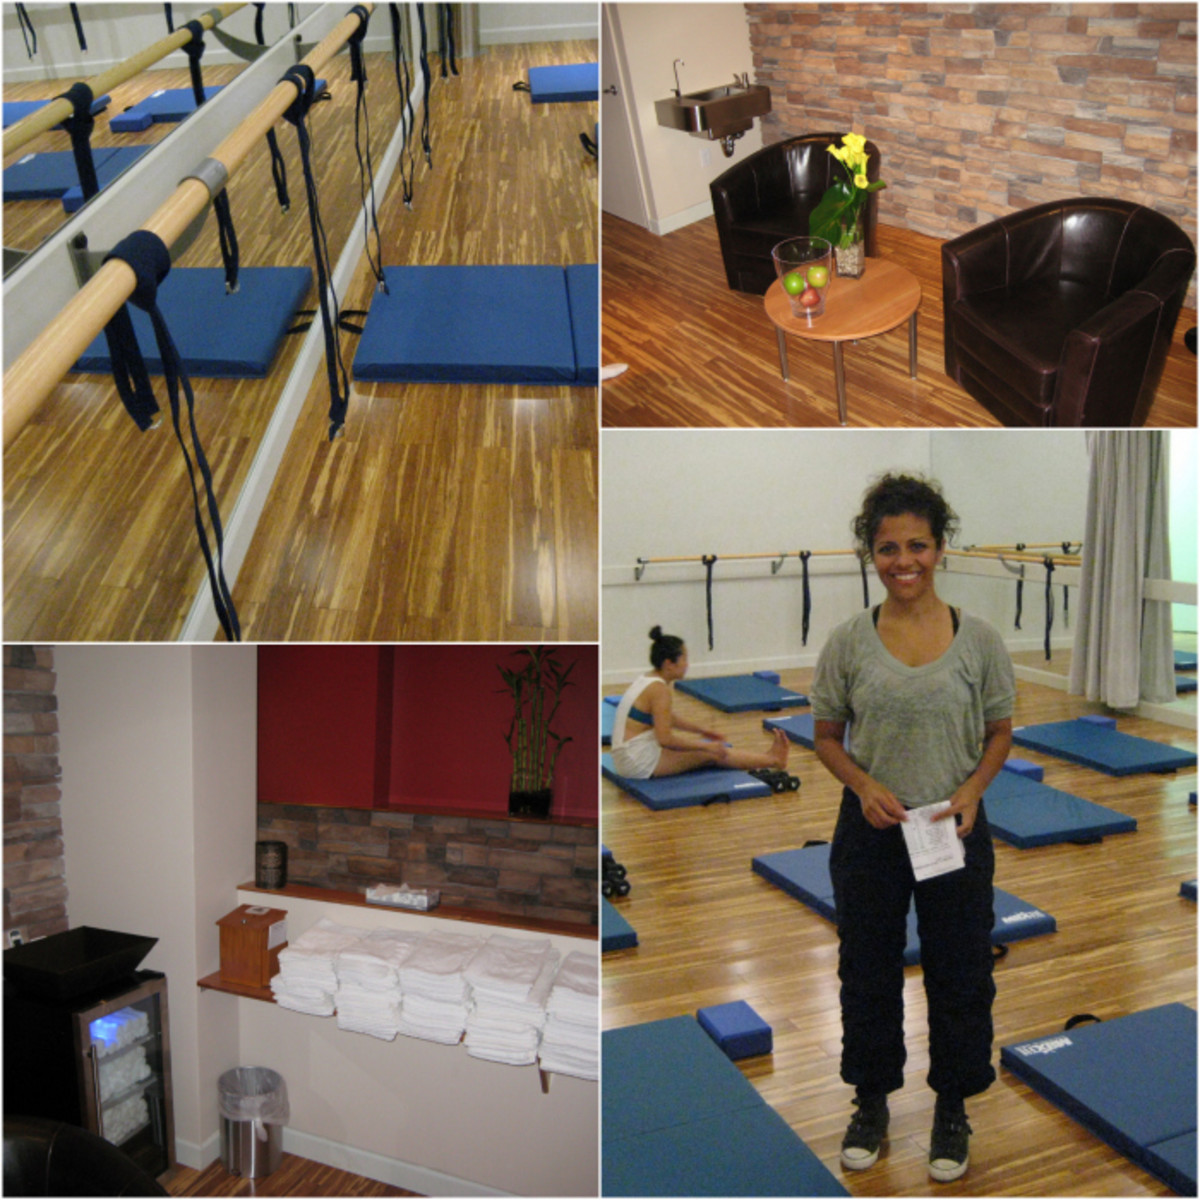 MindBodyStudioCollage